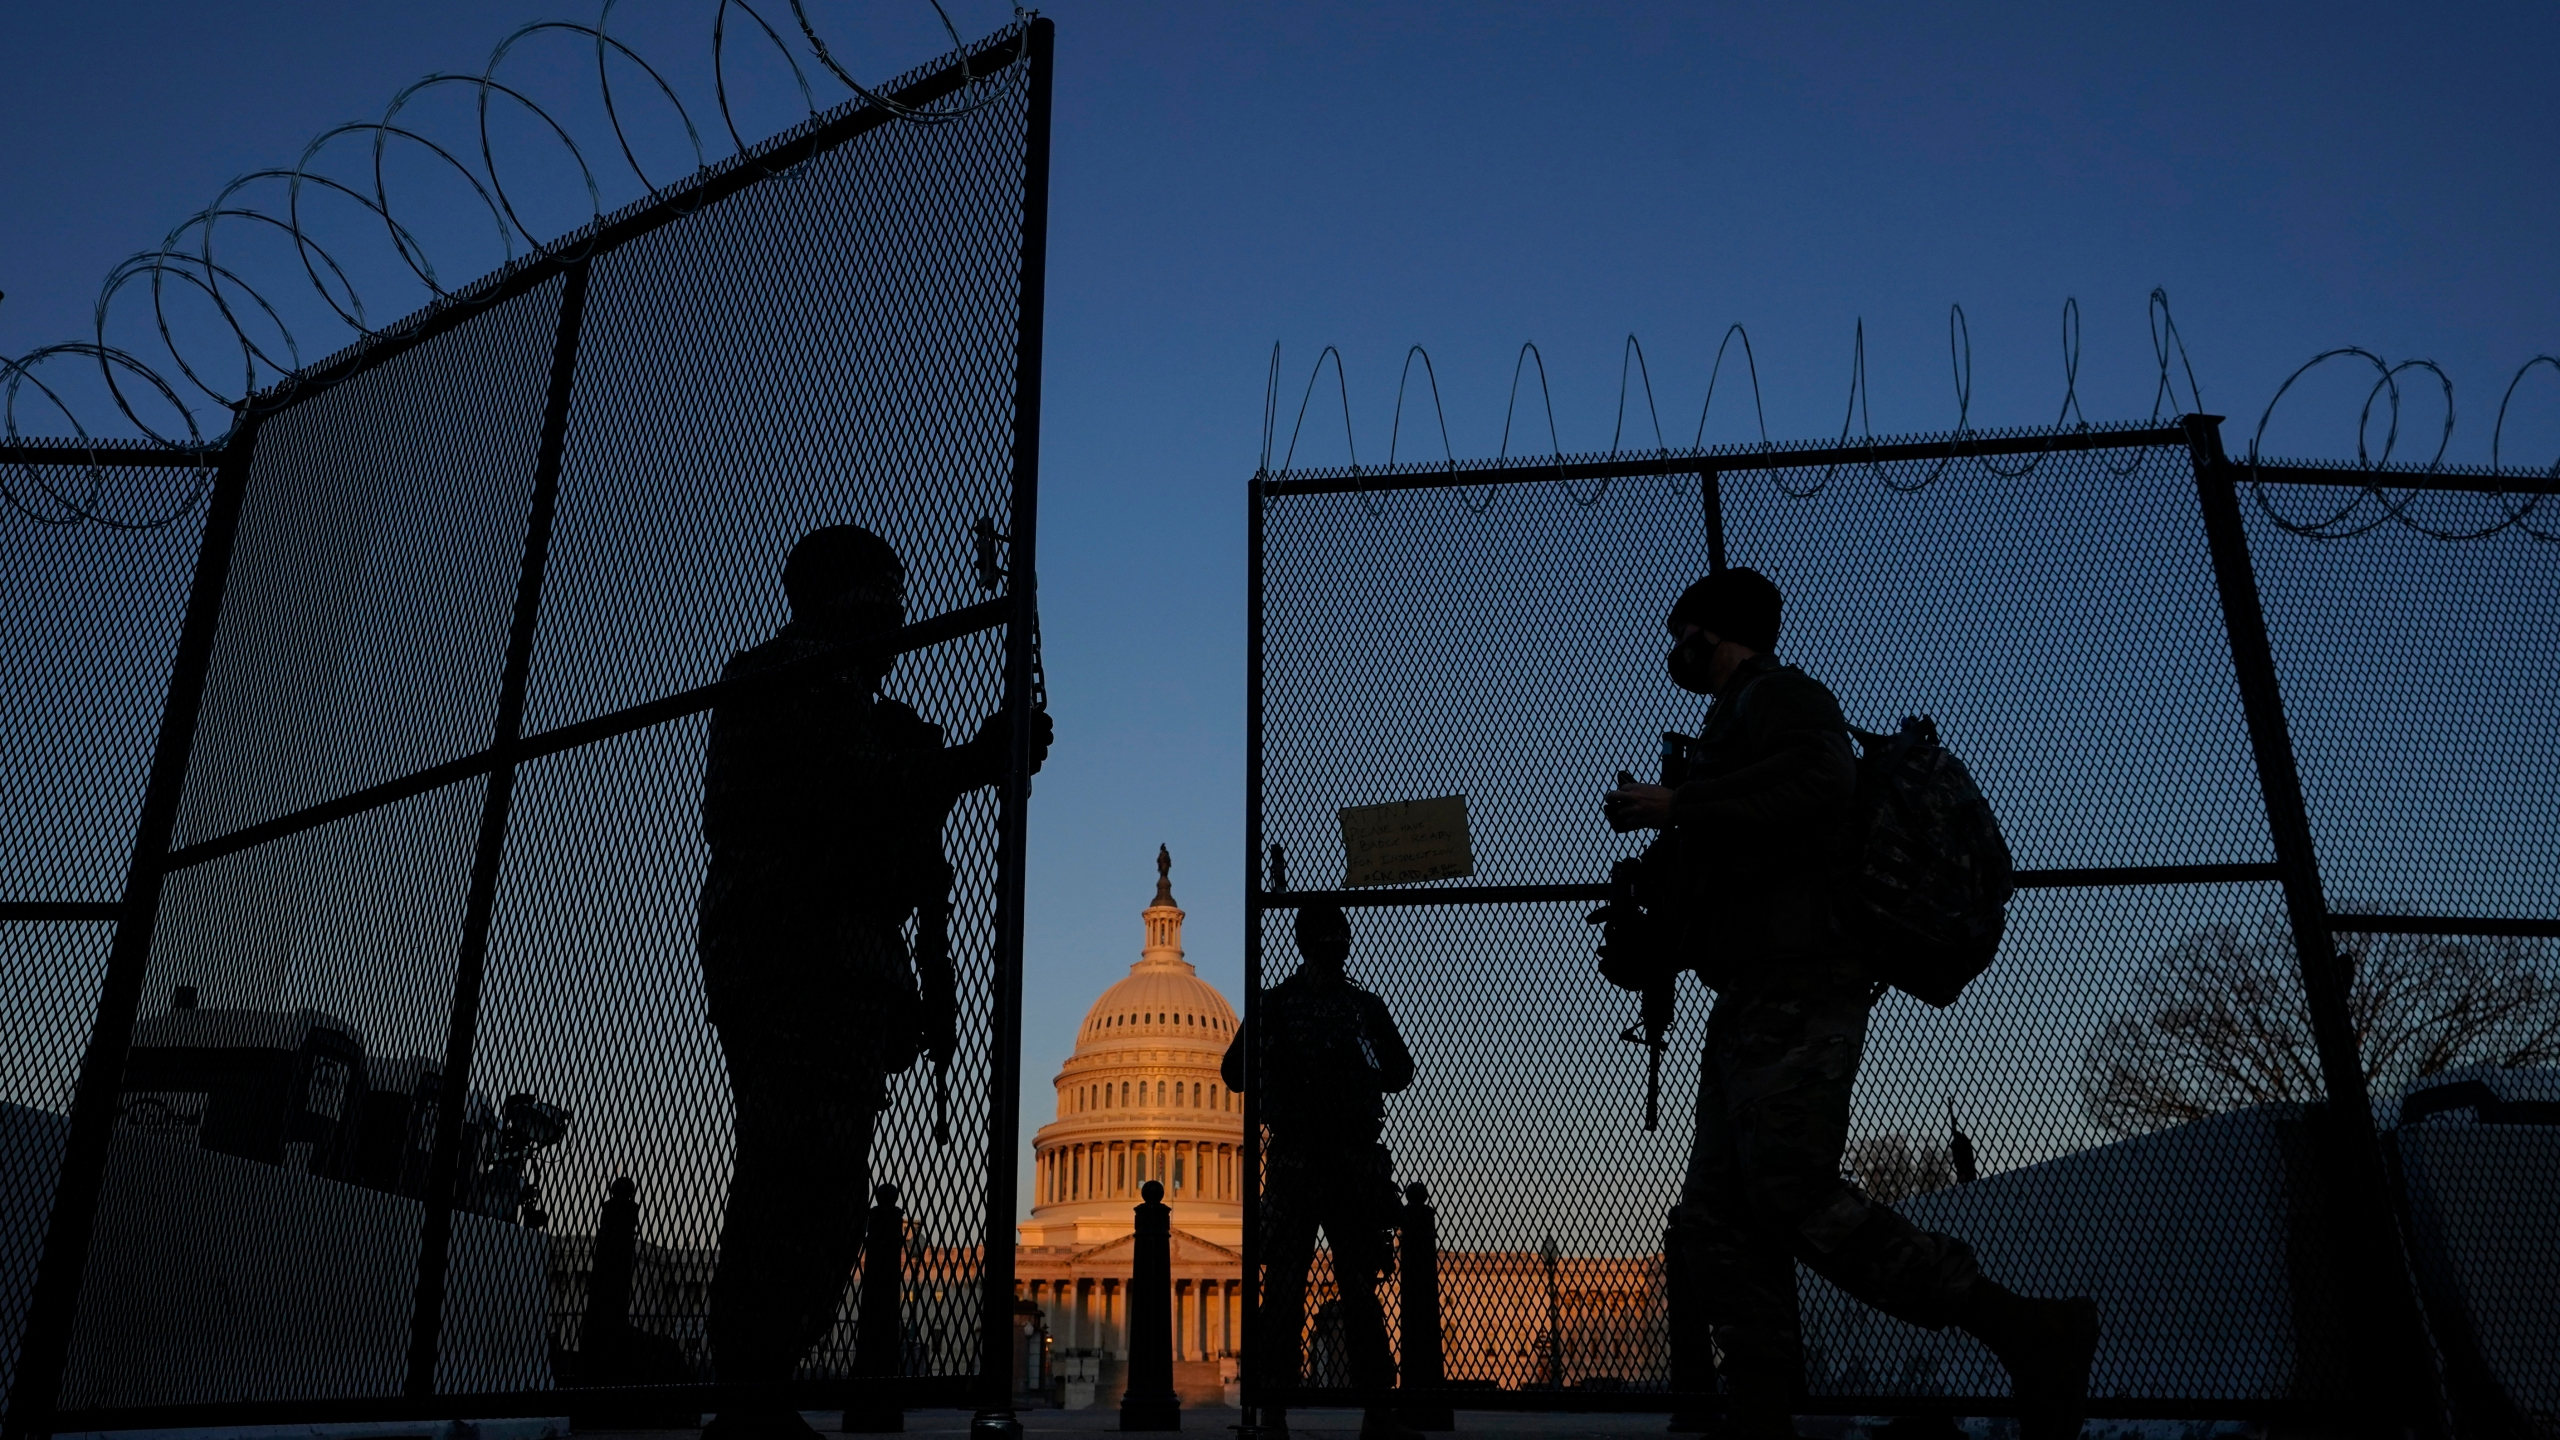 In this March 8, 2021, file photo, members of the National Guard open a gate in the razor wire topped perimeter fence around the Capitol at sunrise in Washington. (AP Photo/Carolyn Kaster, File)